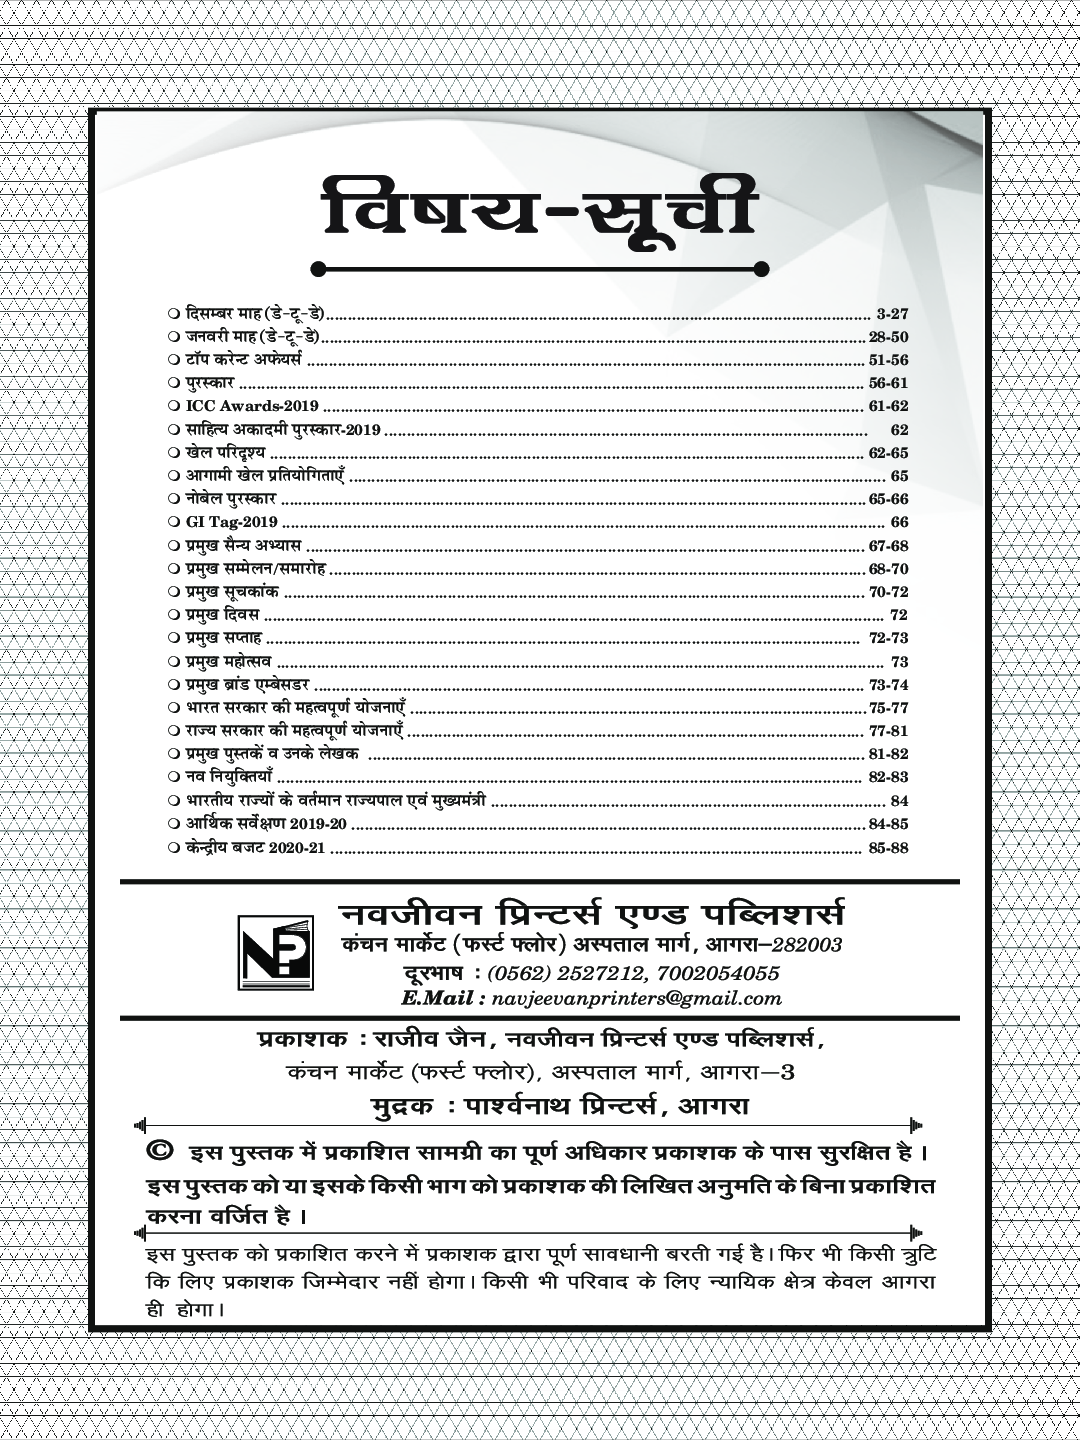 Puja Day To Day कर्रेंट अफेयर्स Vol-I (1 December 2019 To 31 January 2020) - Page 4